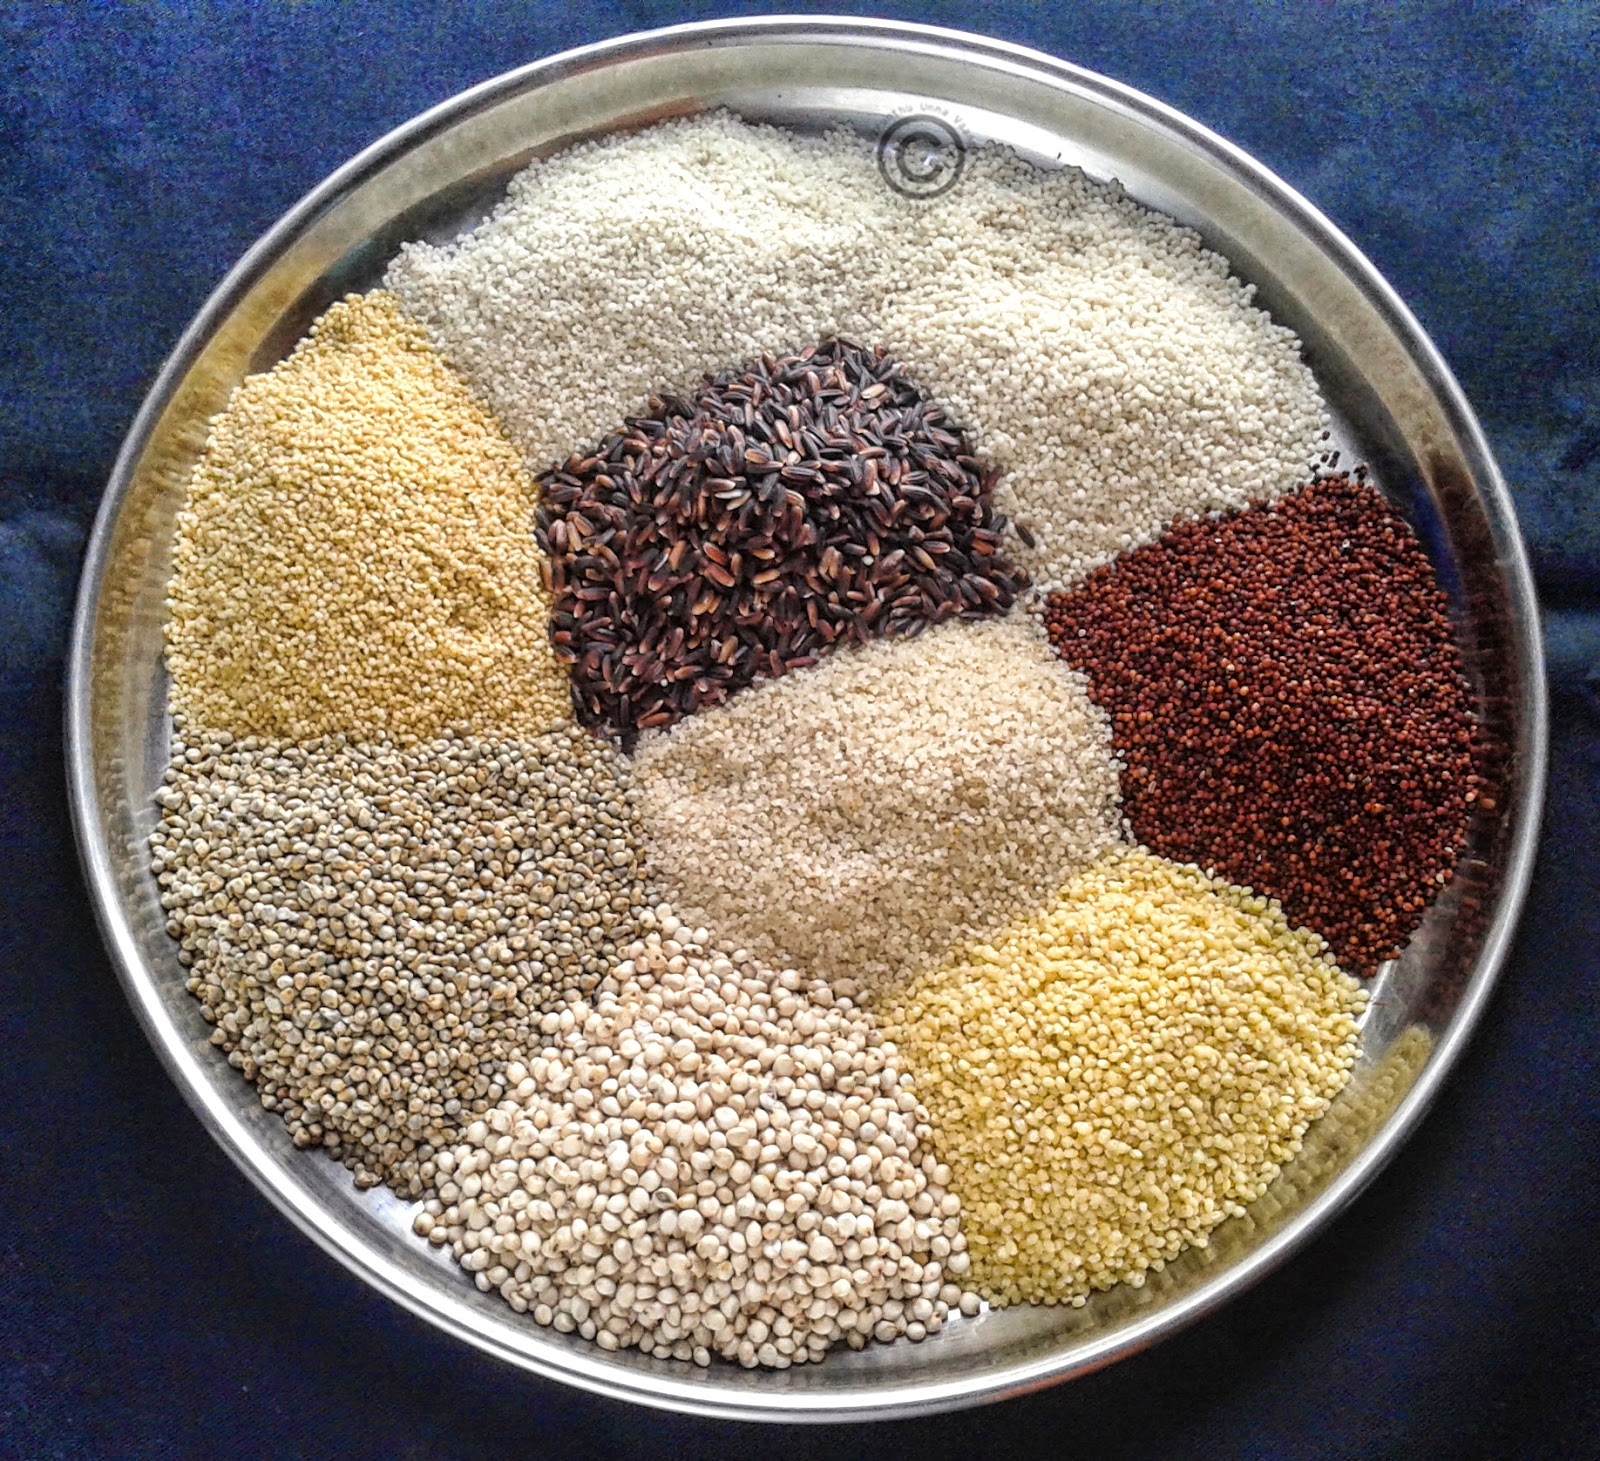 Are Millets Good For You What Are The Benefits And Nutritional Facts About Millets Are Millets Good For You What Are The Benefits And Nutritional Facts About Millets new pics